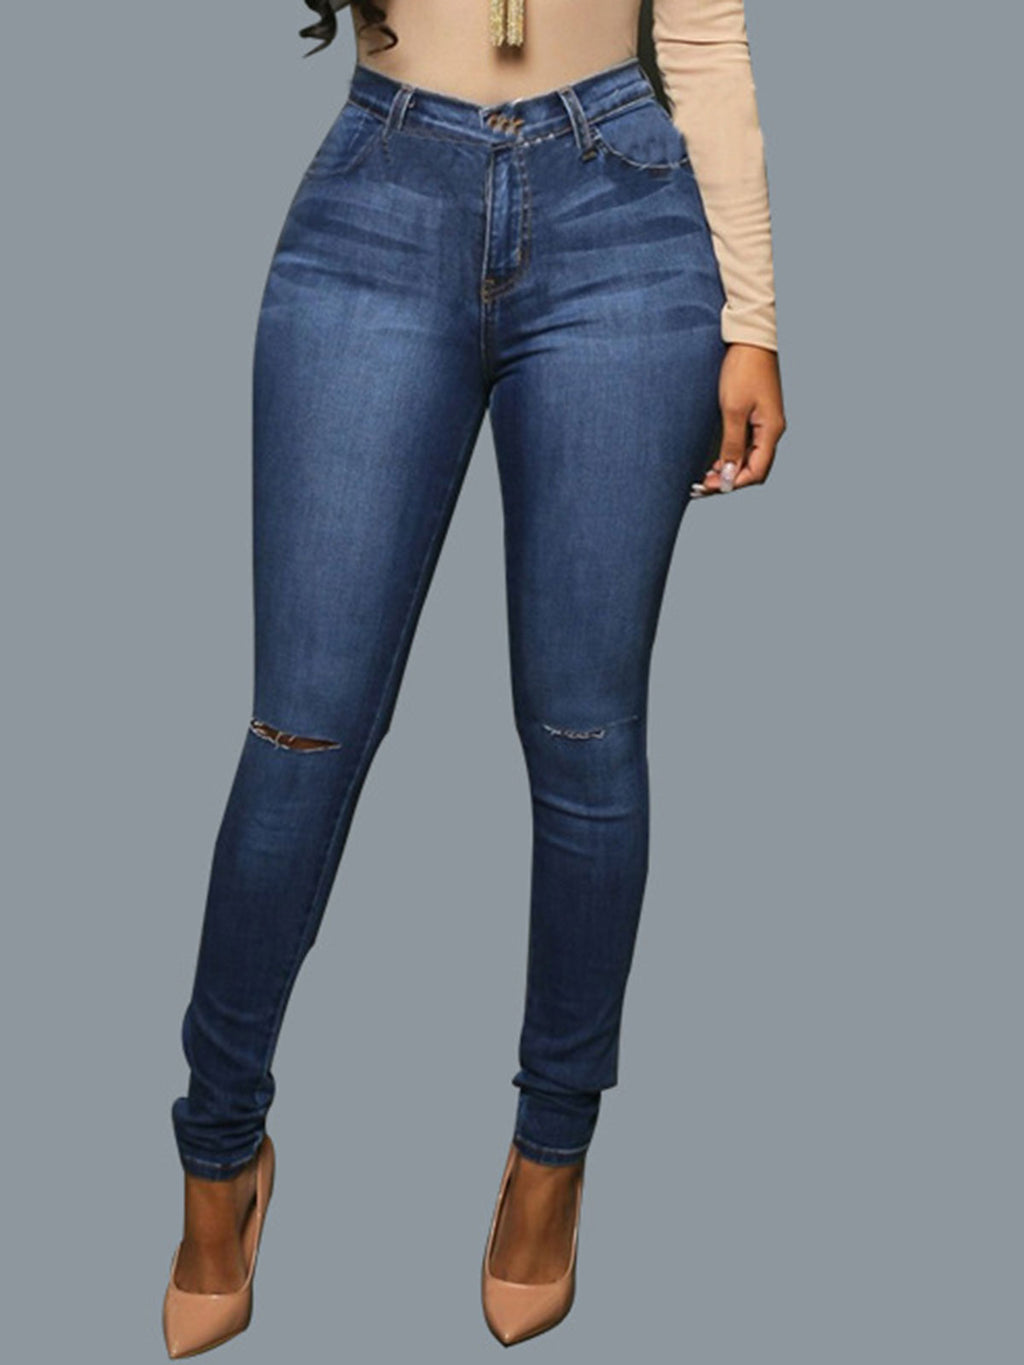 Elastic High-Waist Worn Hole Jeans